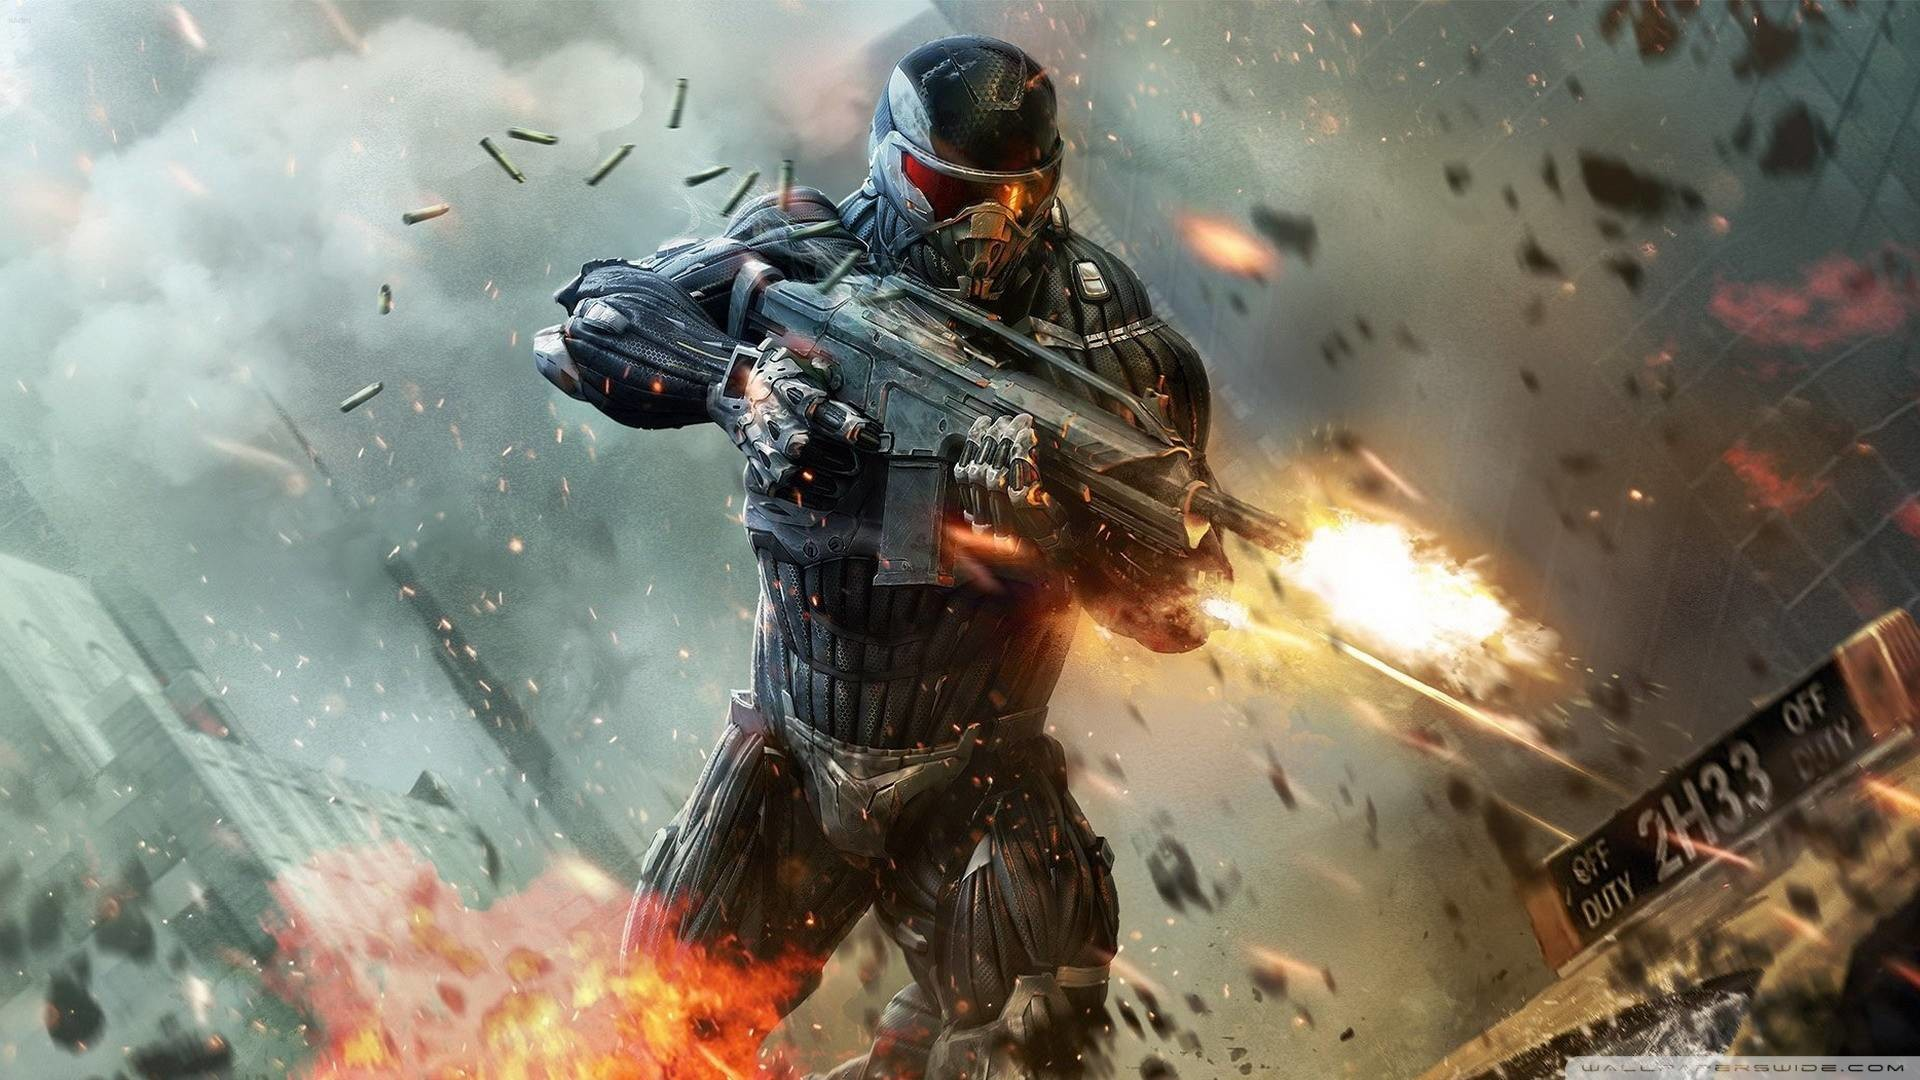 1920x1080 HD Wallpapers Widescreen 1080P 3D | View Full Size | More crysis 2 wallpaper  full hd